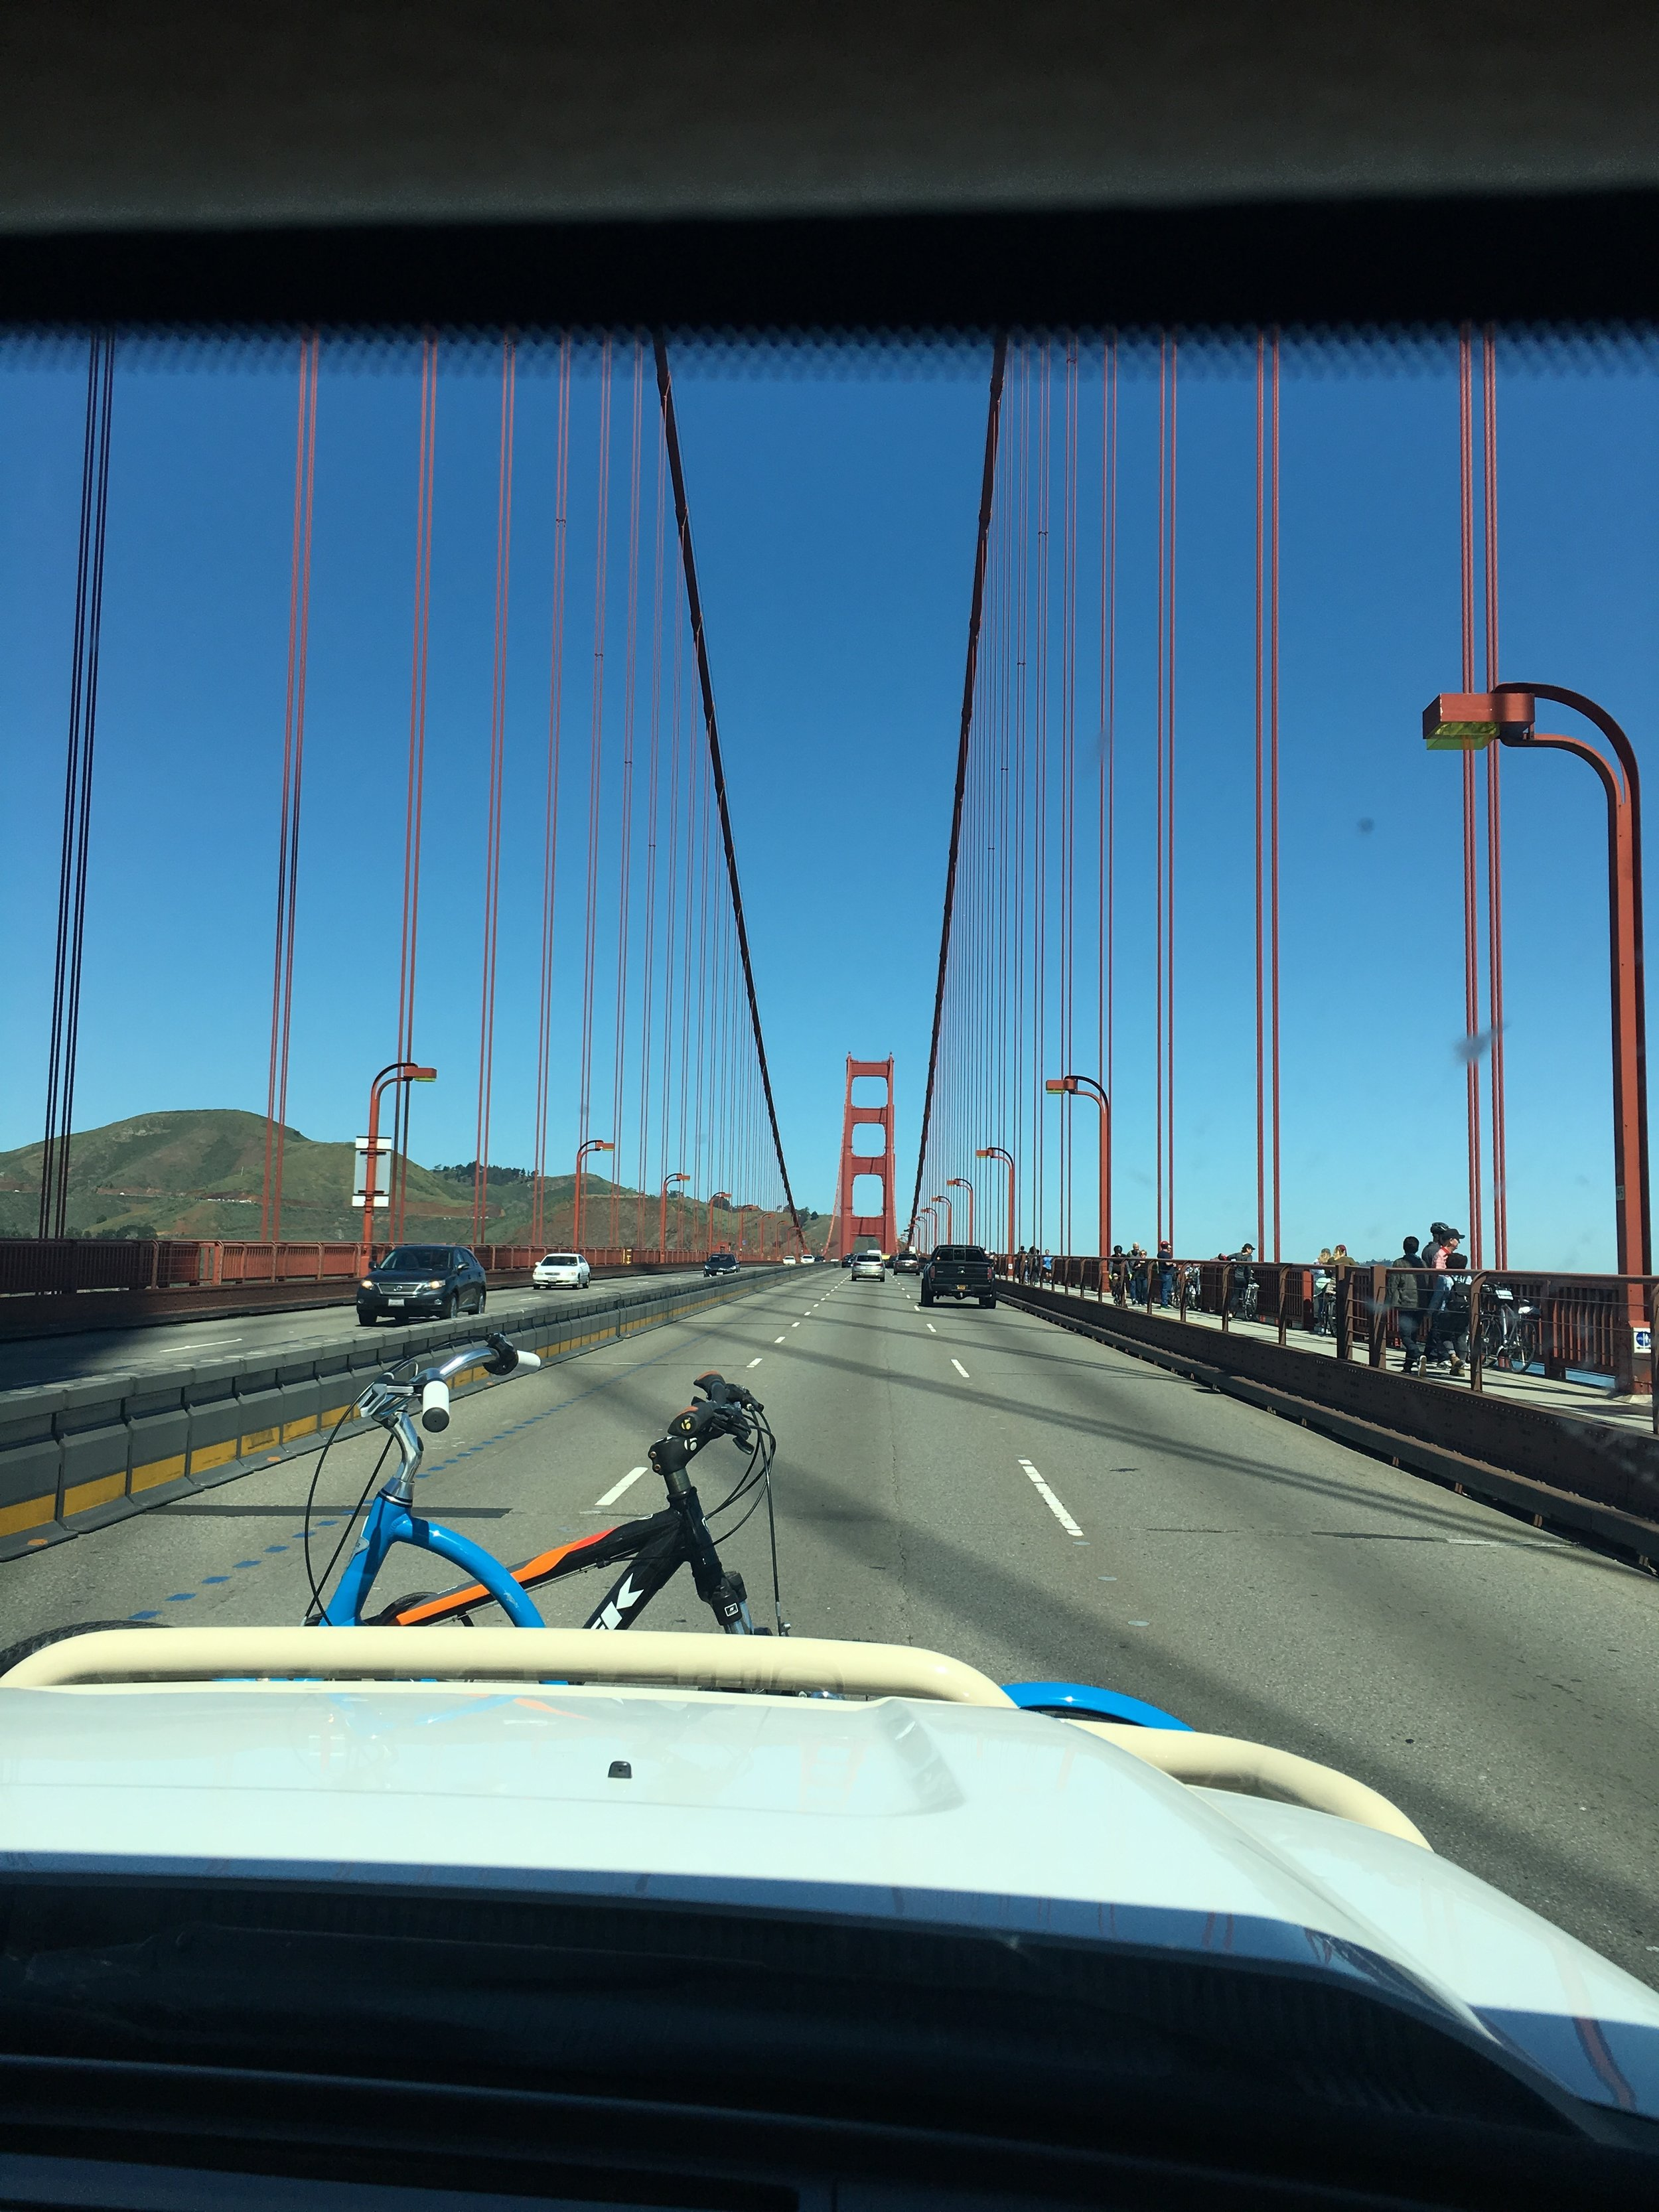 Going over the Golden Gate Bridge. San Francisco traffic was crazy, as usual. No thank you!